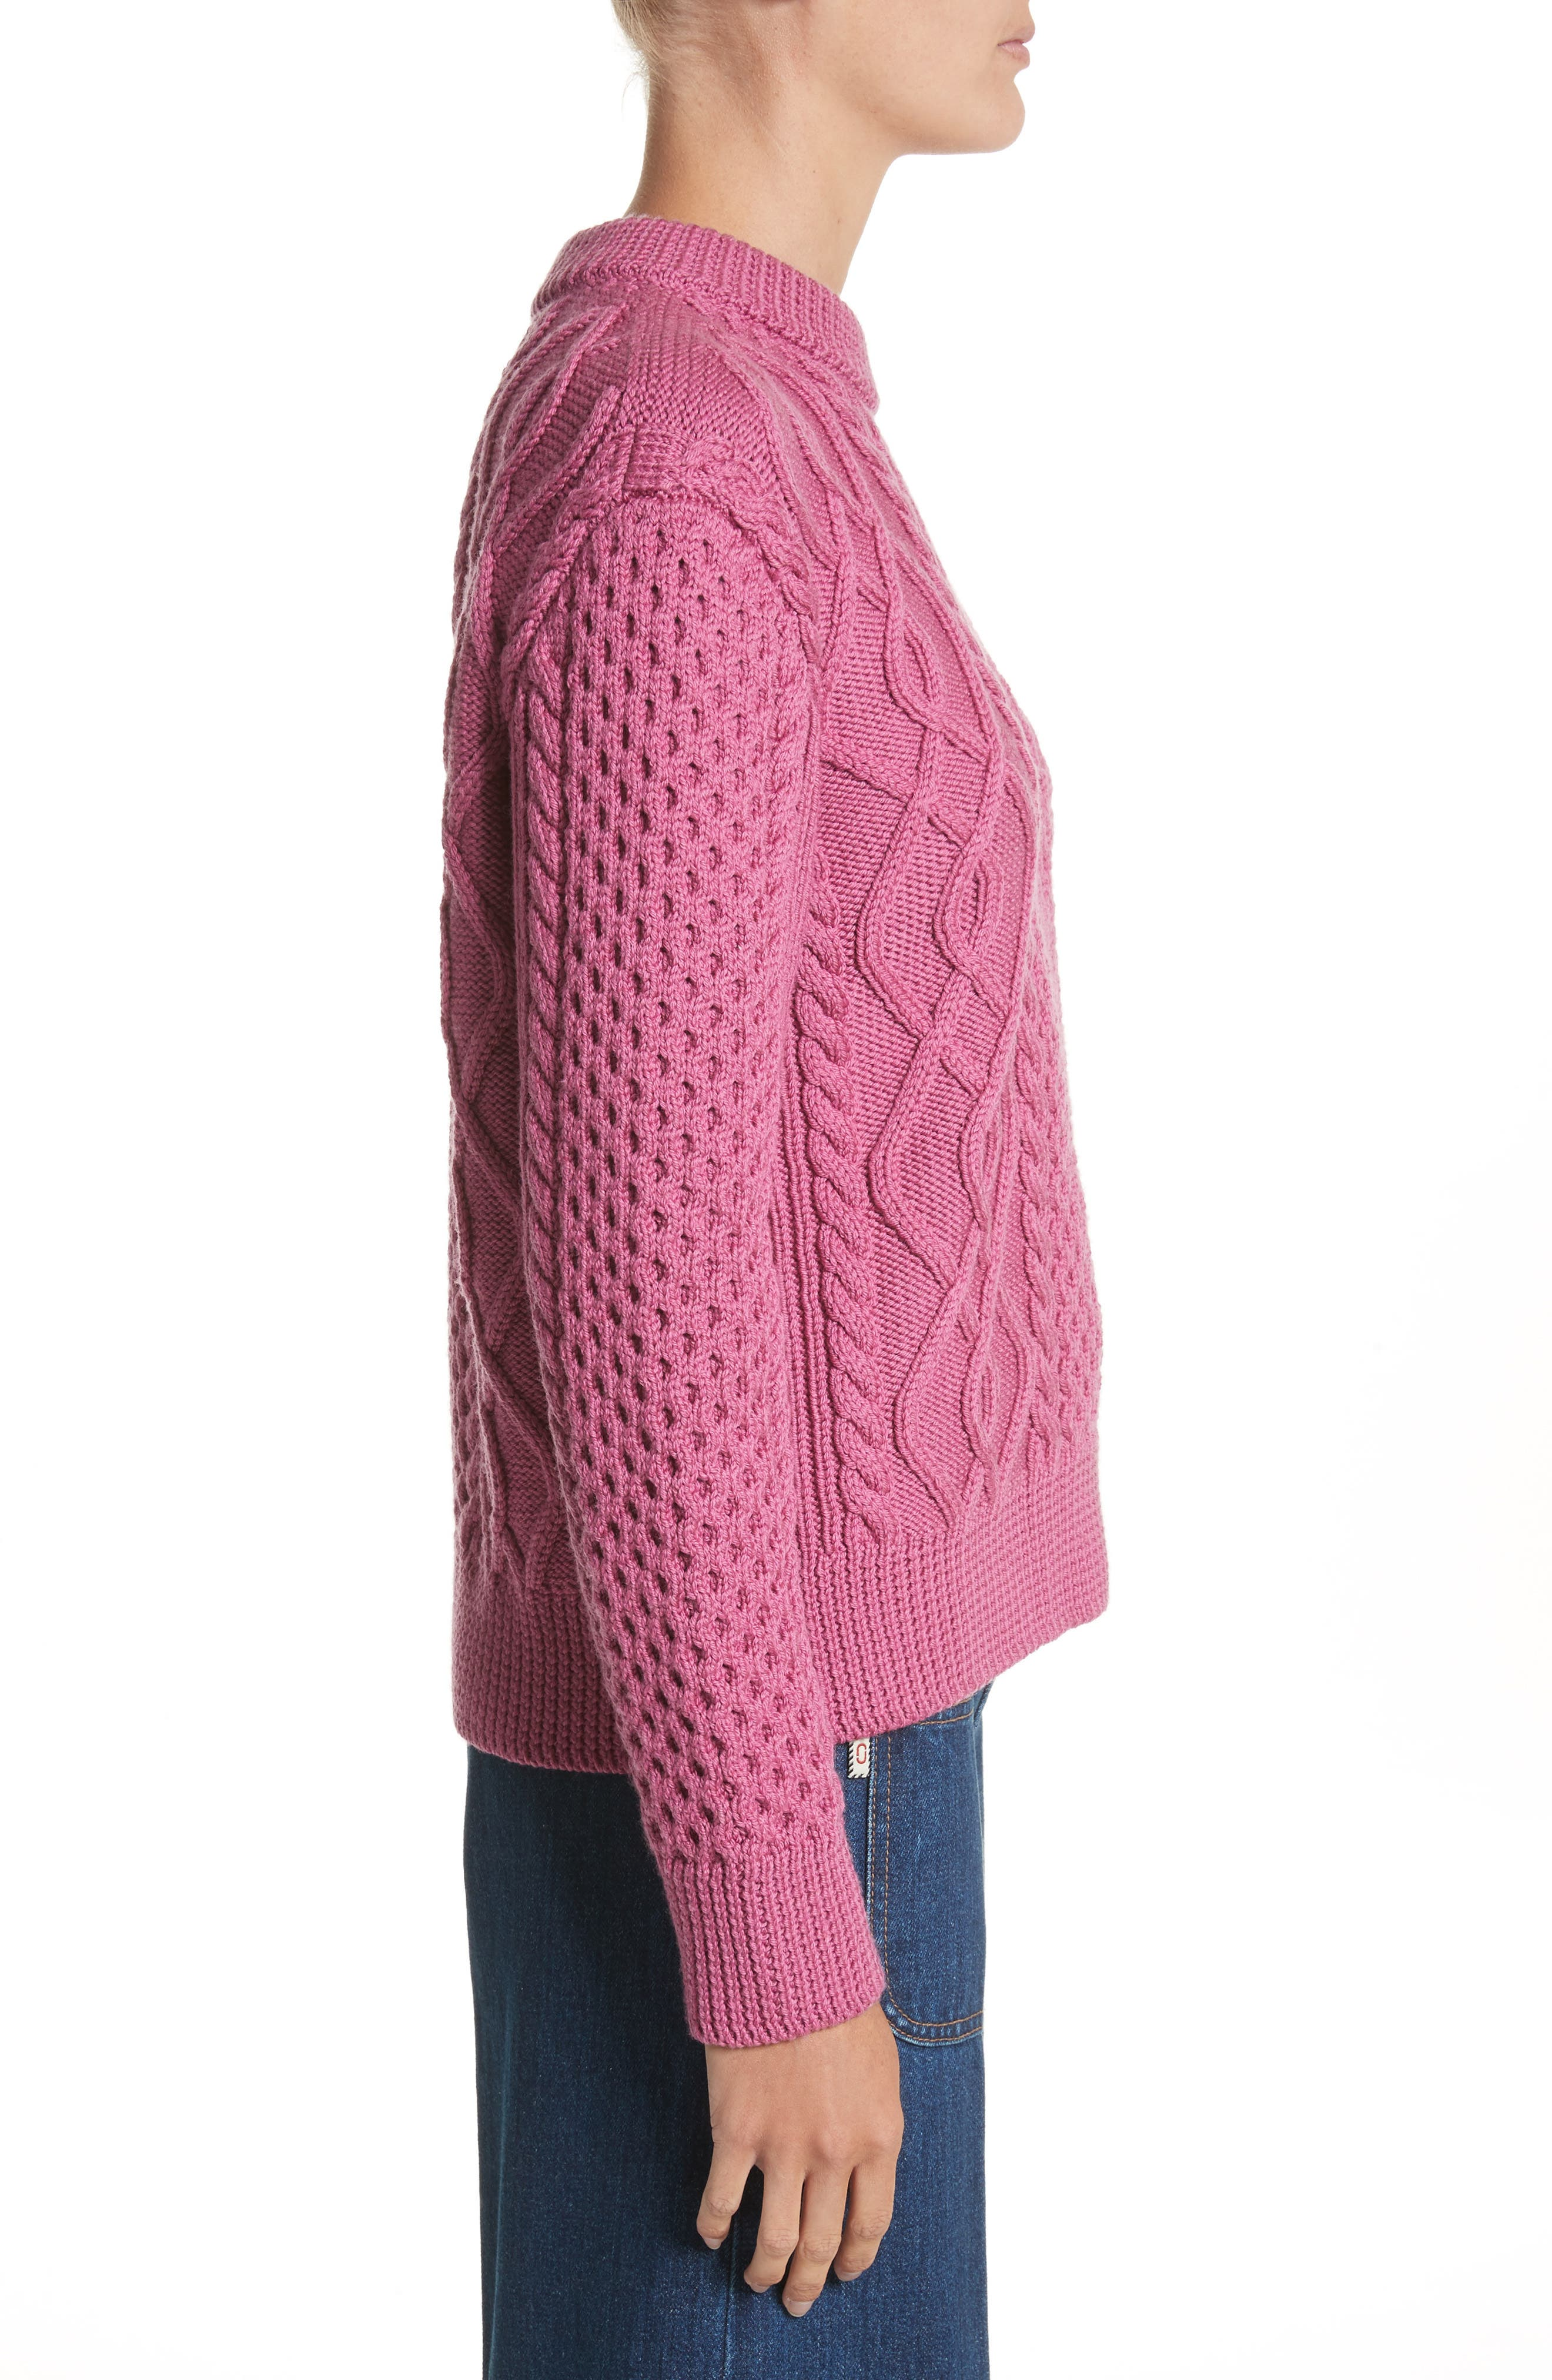 Merino Wool Cable Knit Sweater,                             Alternate thumbnail 3, color,